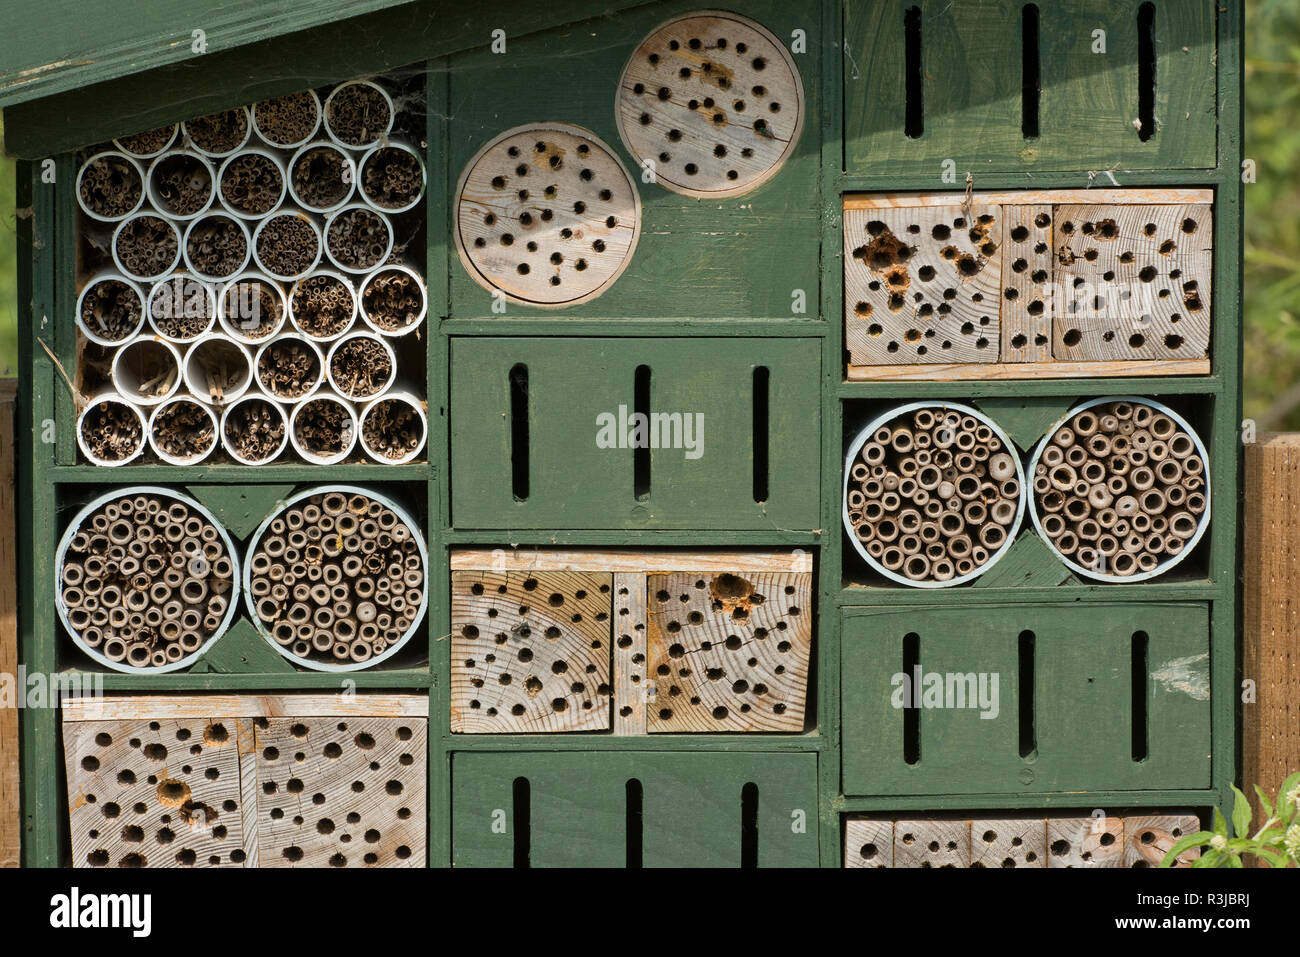 Insect or invertebrate house or bug hotel with various refuge options for hiding or over-wintering, WWT, West Sussex Stock Photo